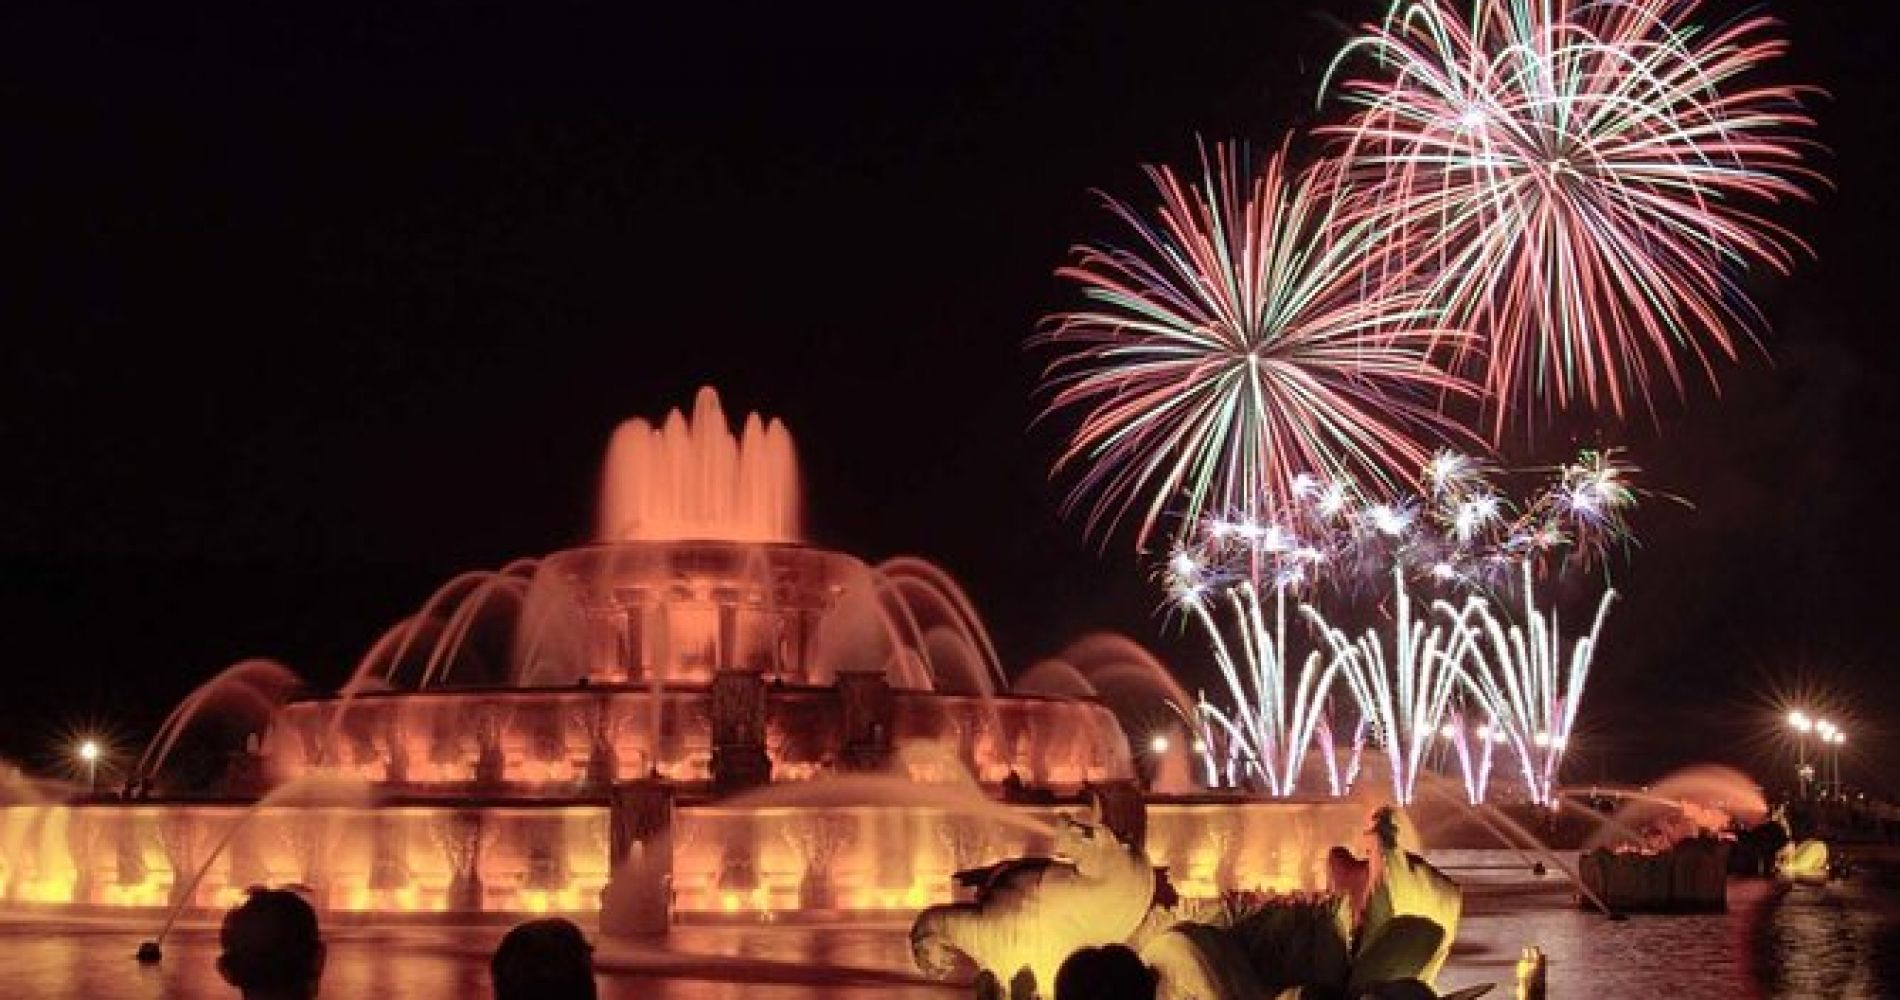 2-Hour Chicago Fireworks Segway Tour